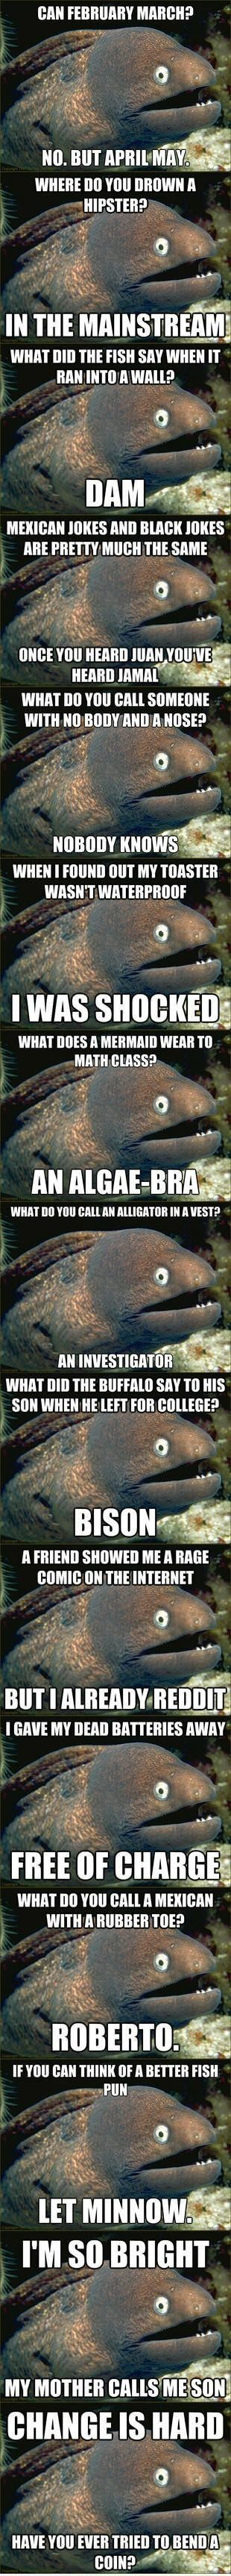 Bad joke eel strikes again.: